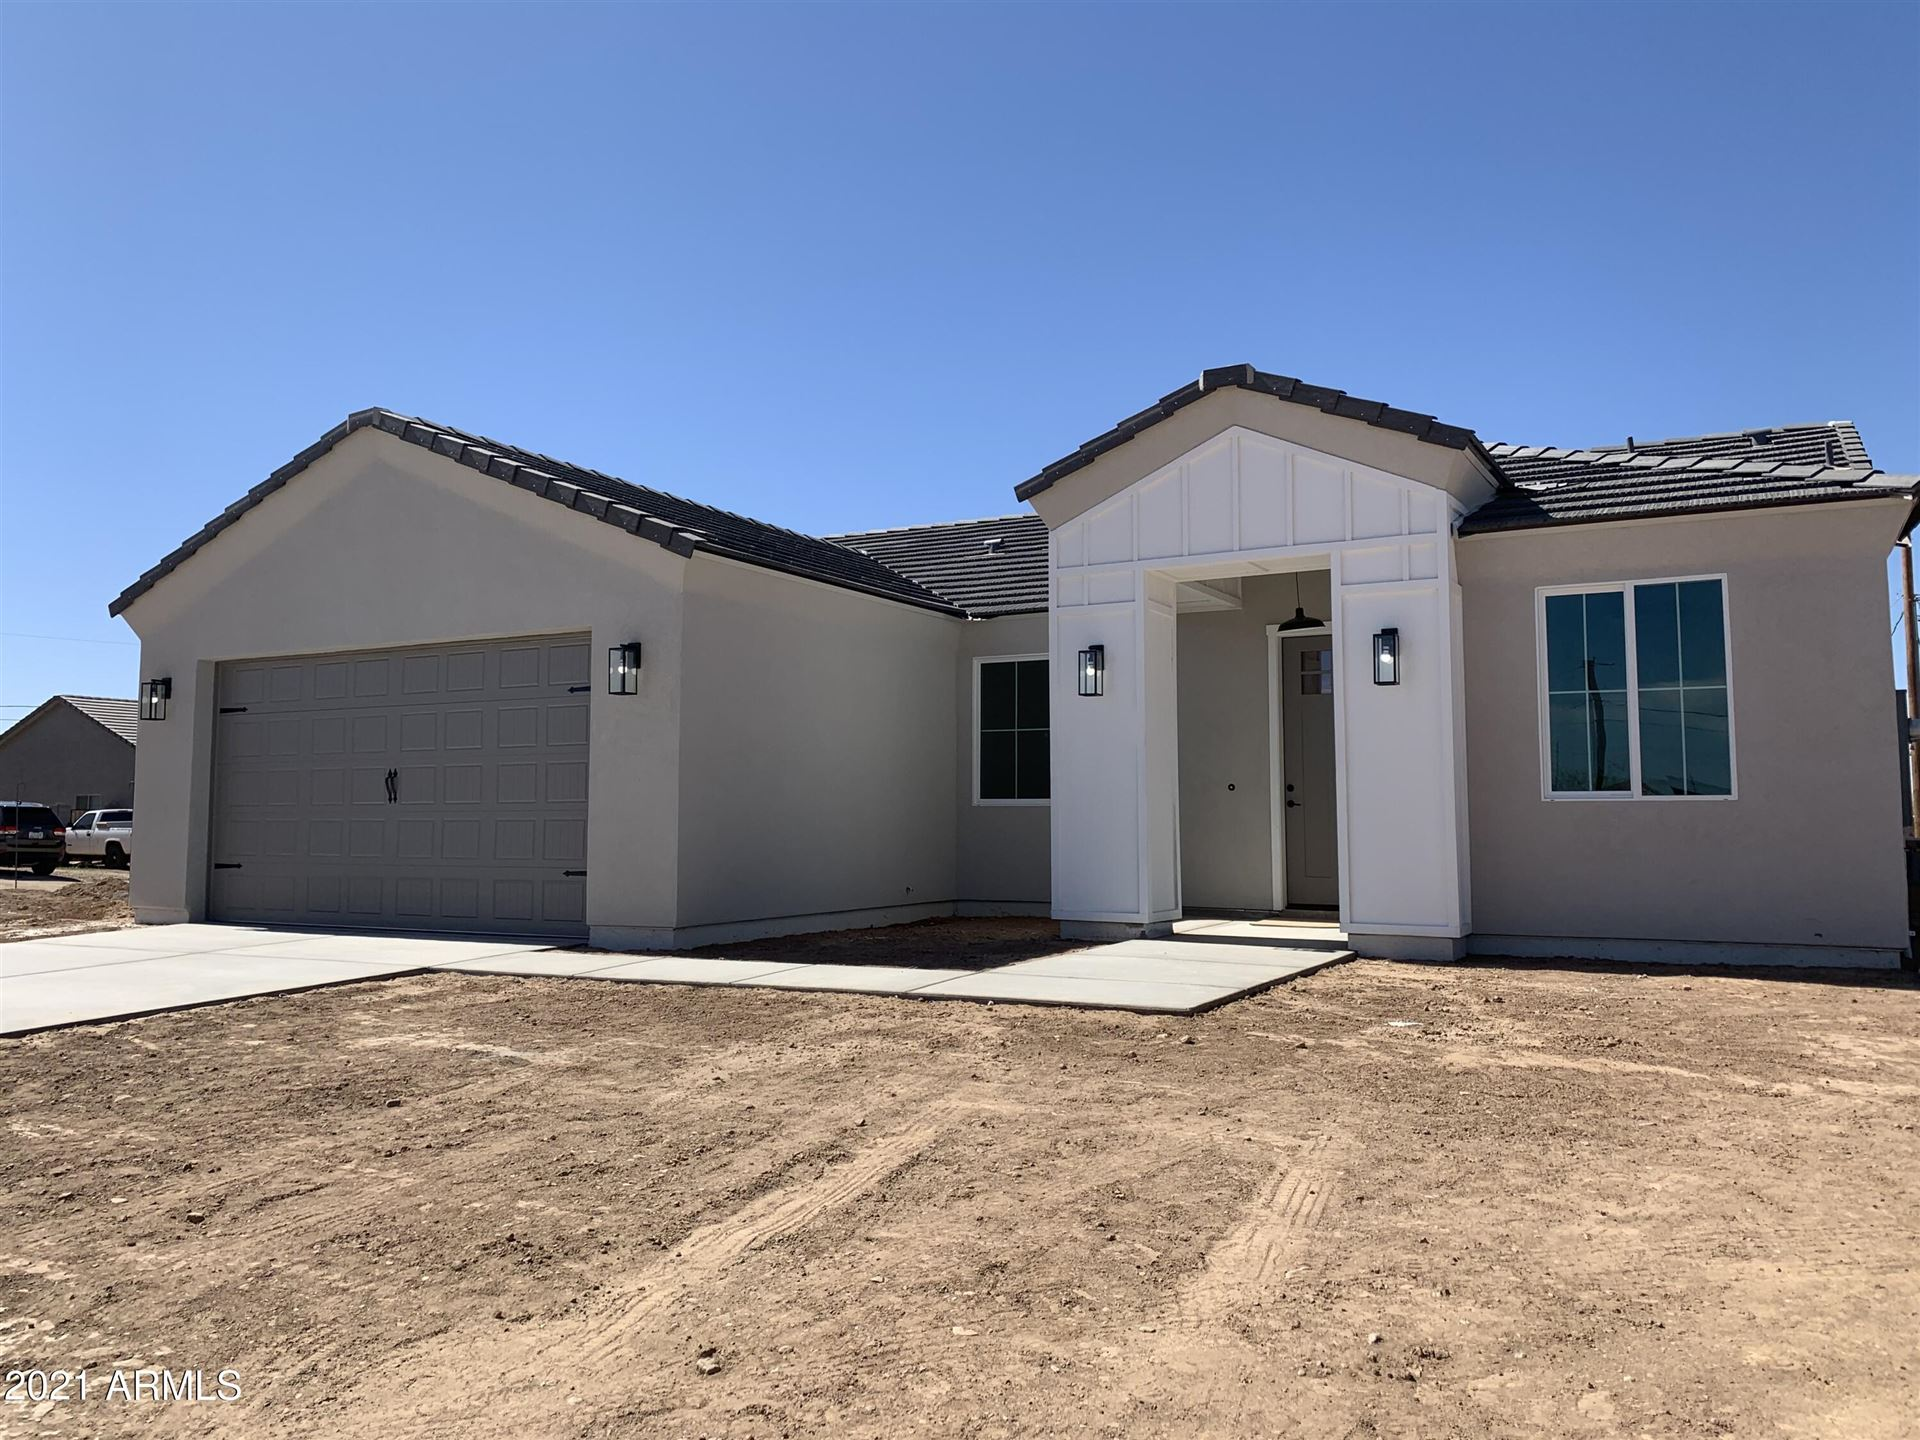 Photo of 35026 N EL CAMINITO --, San Tan Valley, AZ 85140 (MLS # 6194301)